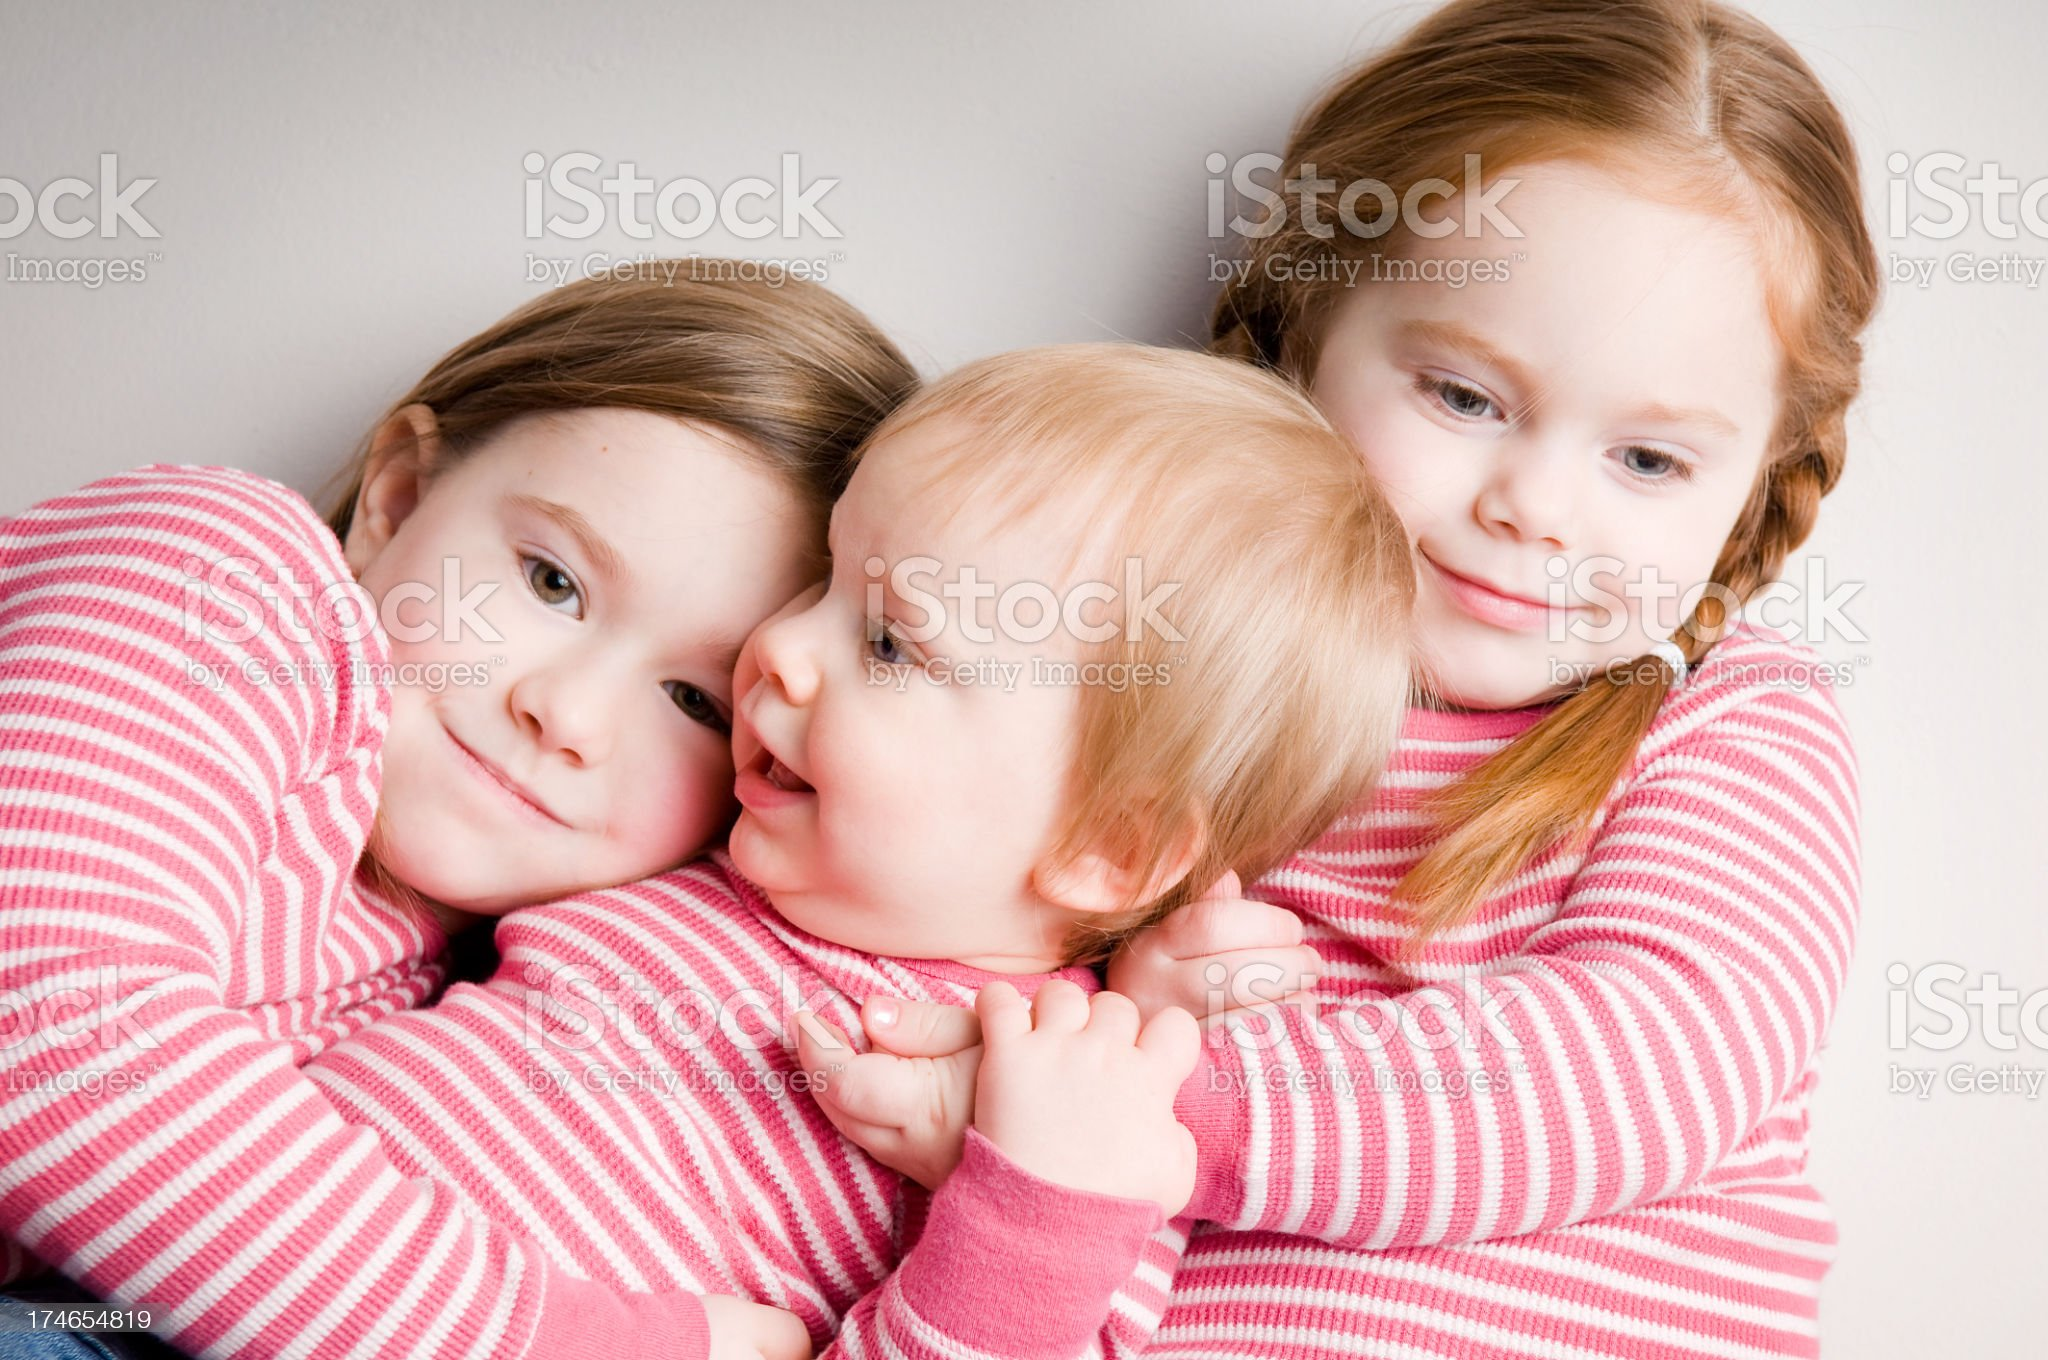 Three Matching Sisters Hugging Each Other royalty-free stock photo